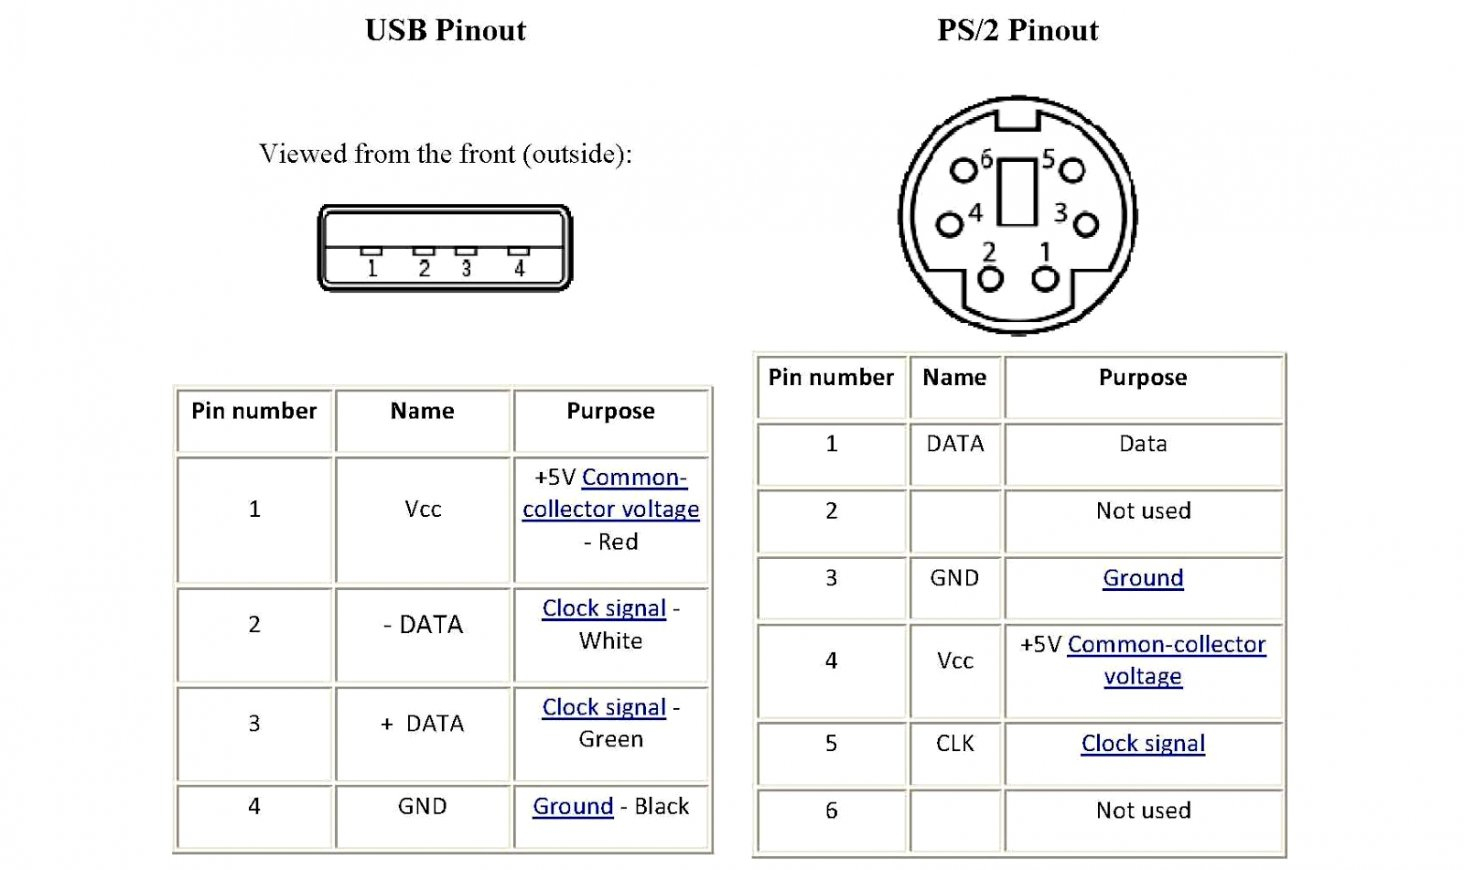 Playstation 2 Wiring Diagram | Wiring Diagram - Playstation 2 Controller To Usb Wiring Diagram